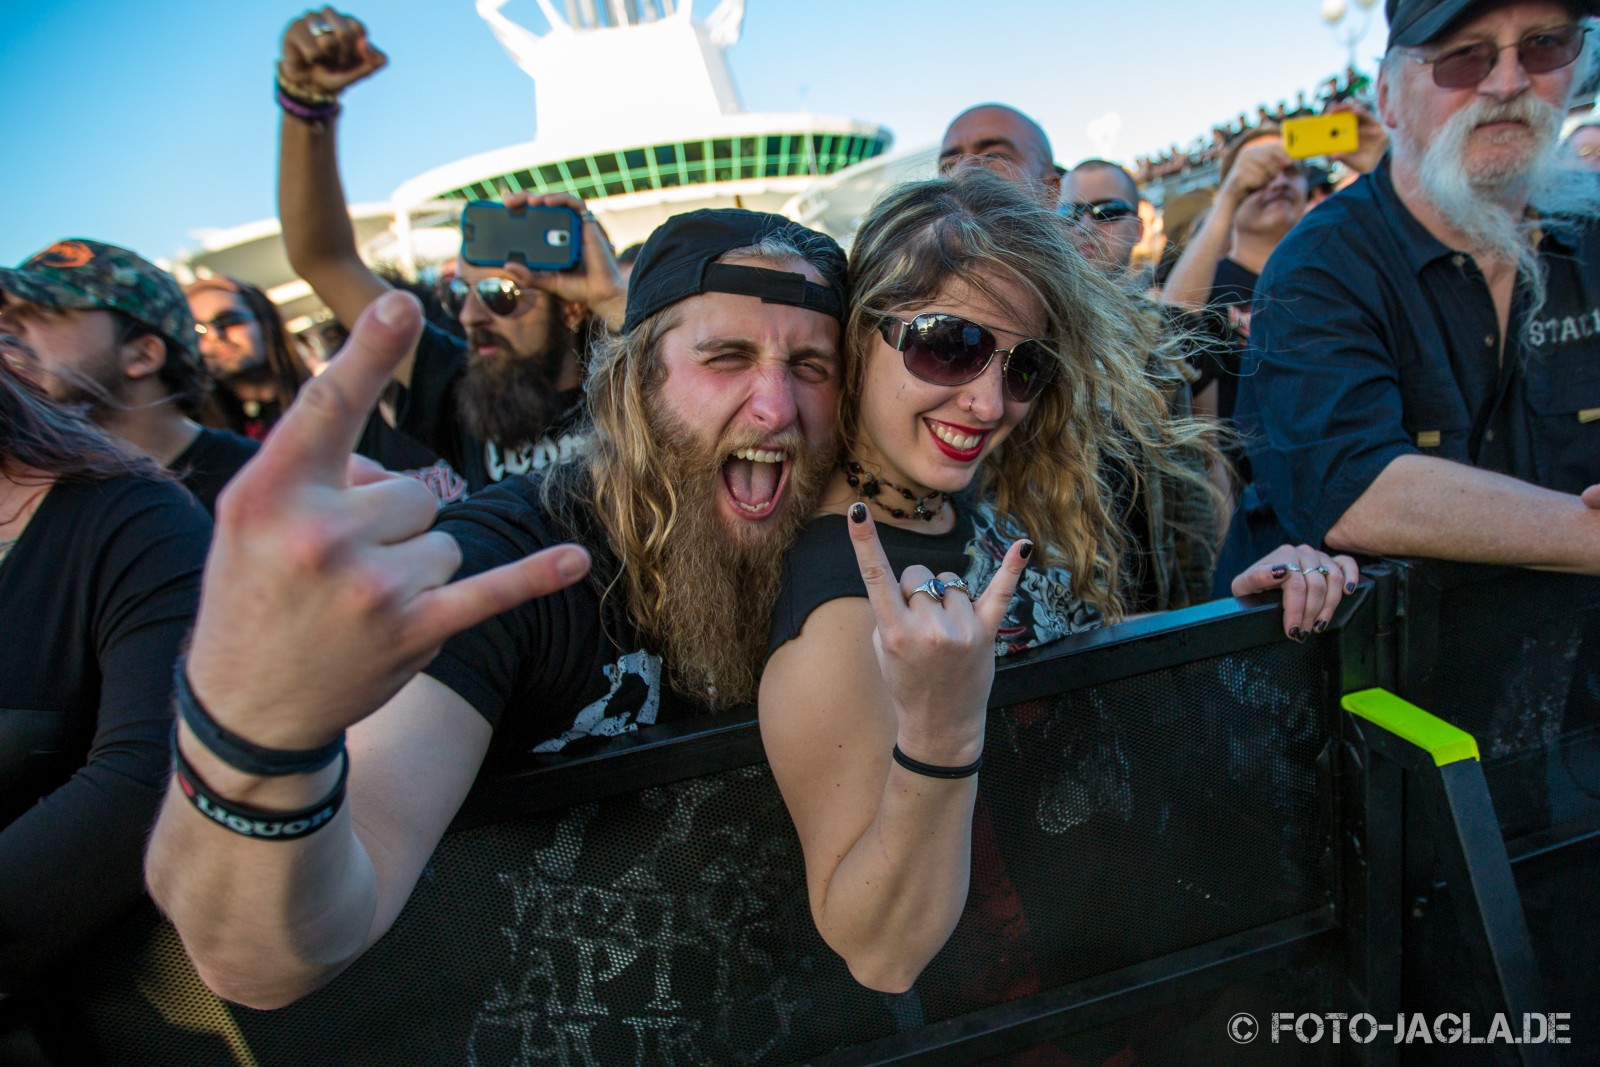 70000 Tons of Metal 2014 ::. Crowd @ The Haunted